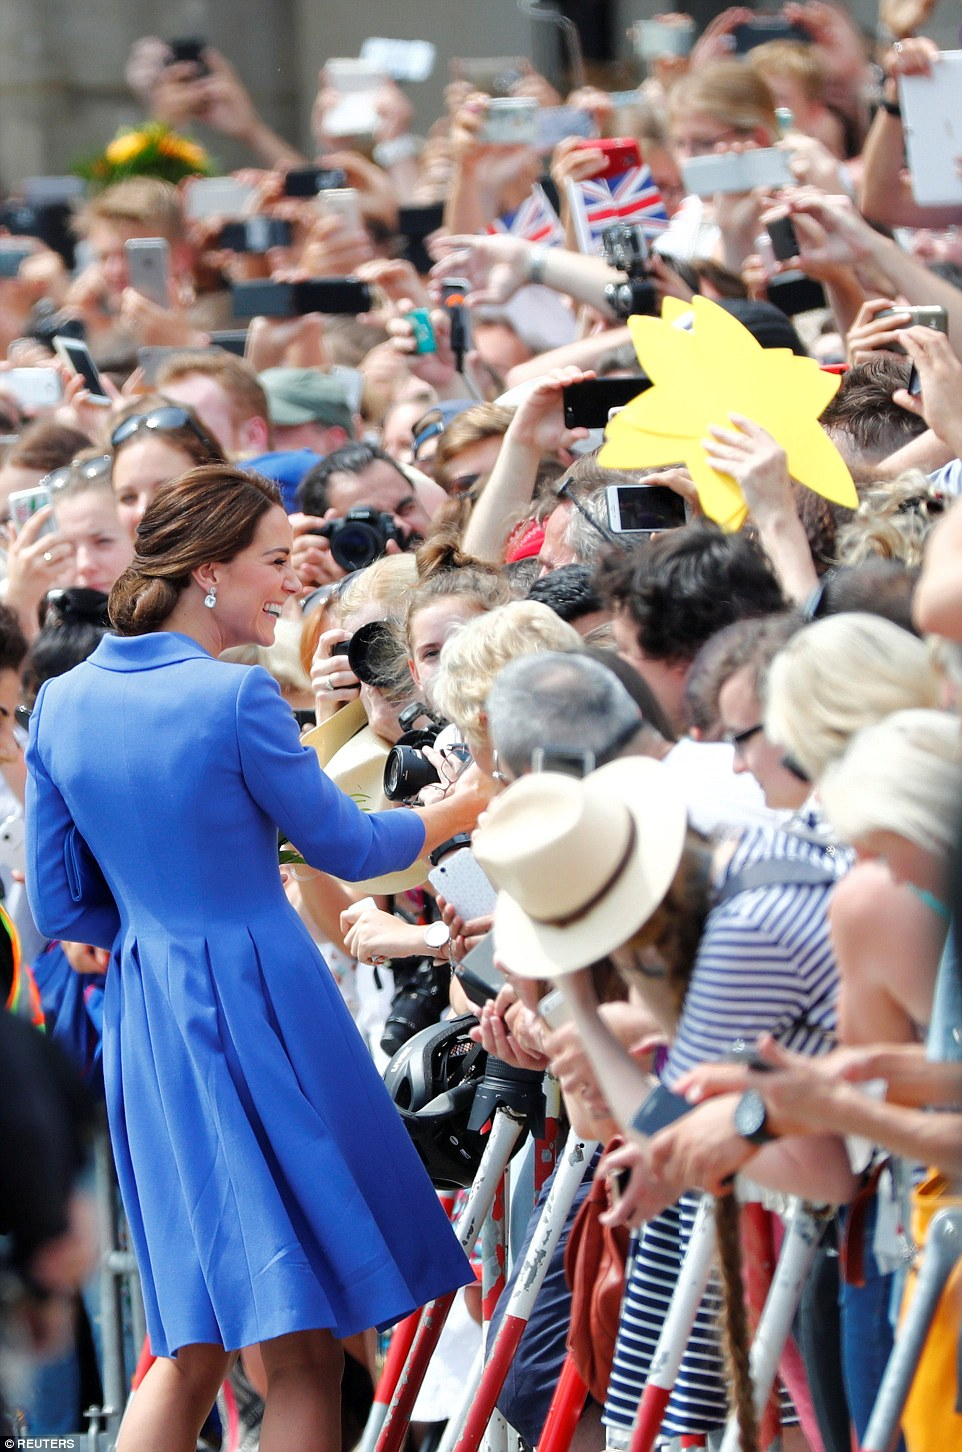 Kate fever hits Berlin! Royal fans were very enthusiastic about welcoming the Duchess, with thousands lining the streets